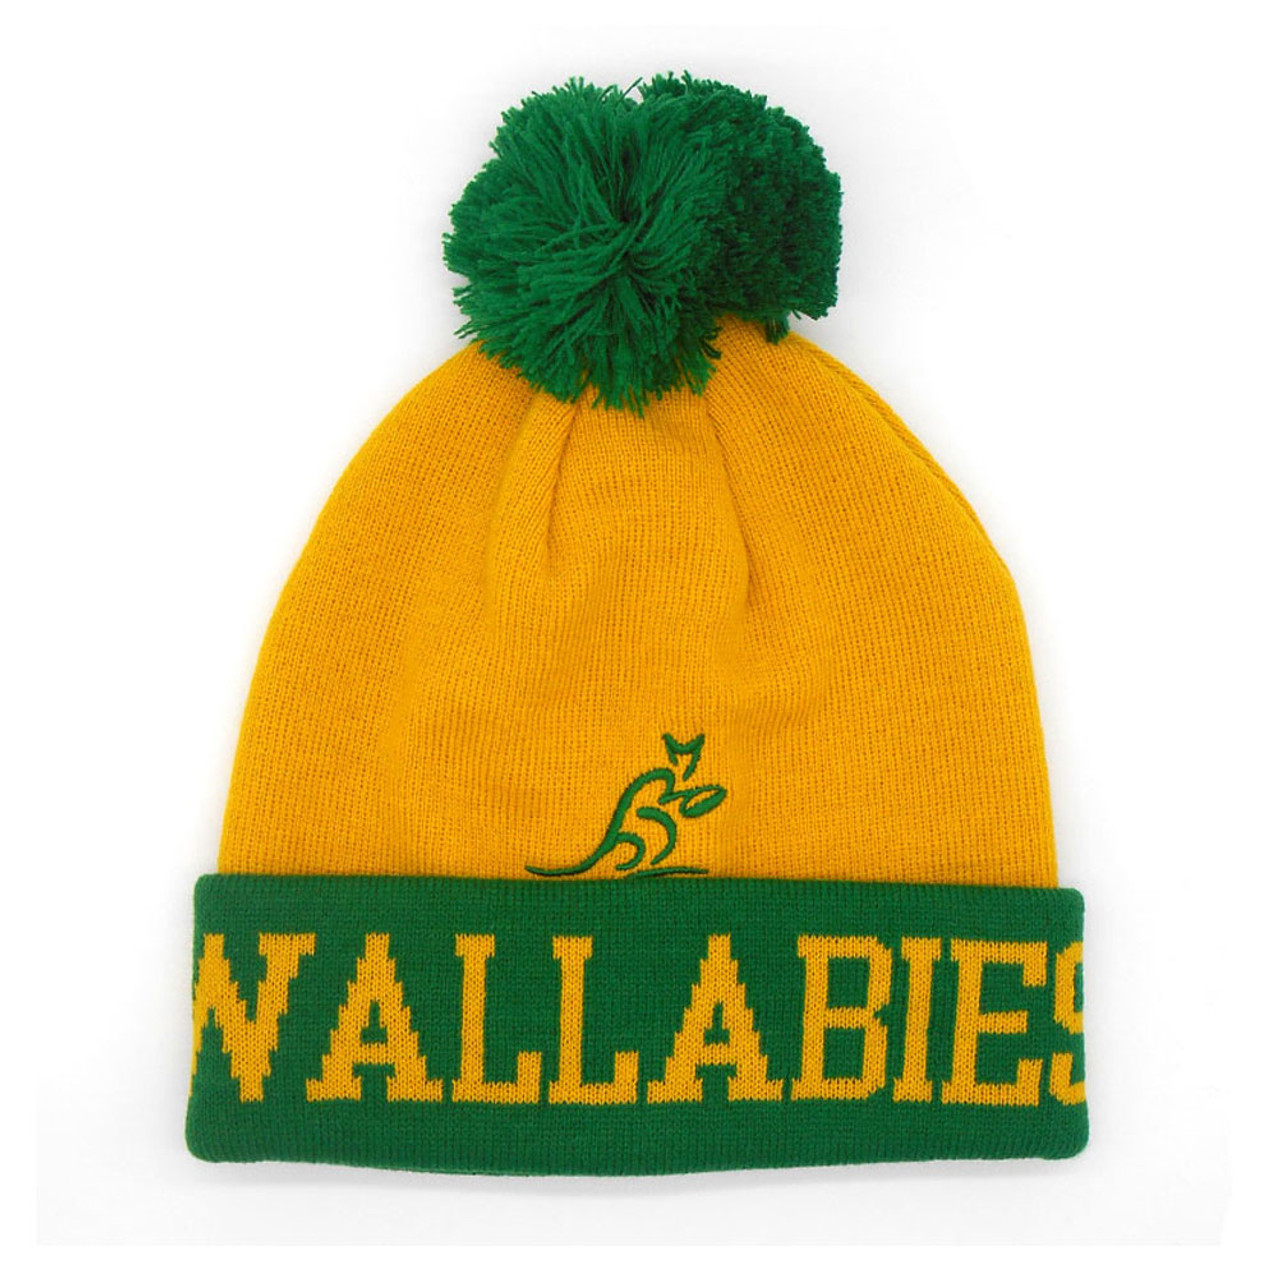 BRANDCO Spingboks Rugby Bobble Beanie Hat one size  yellow ... de122fb64e5